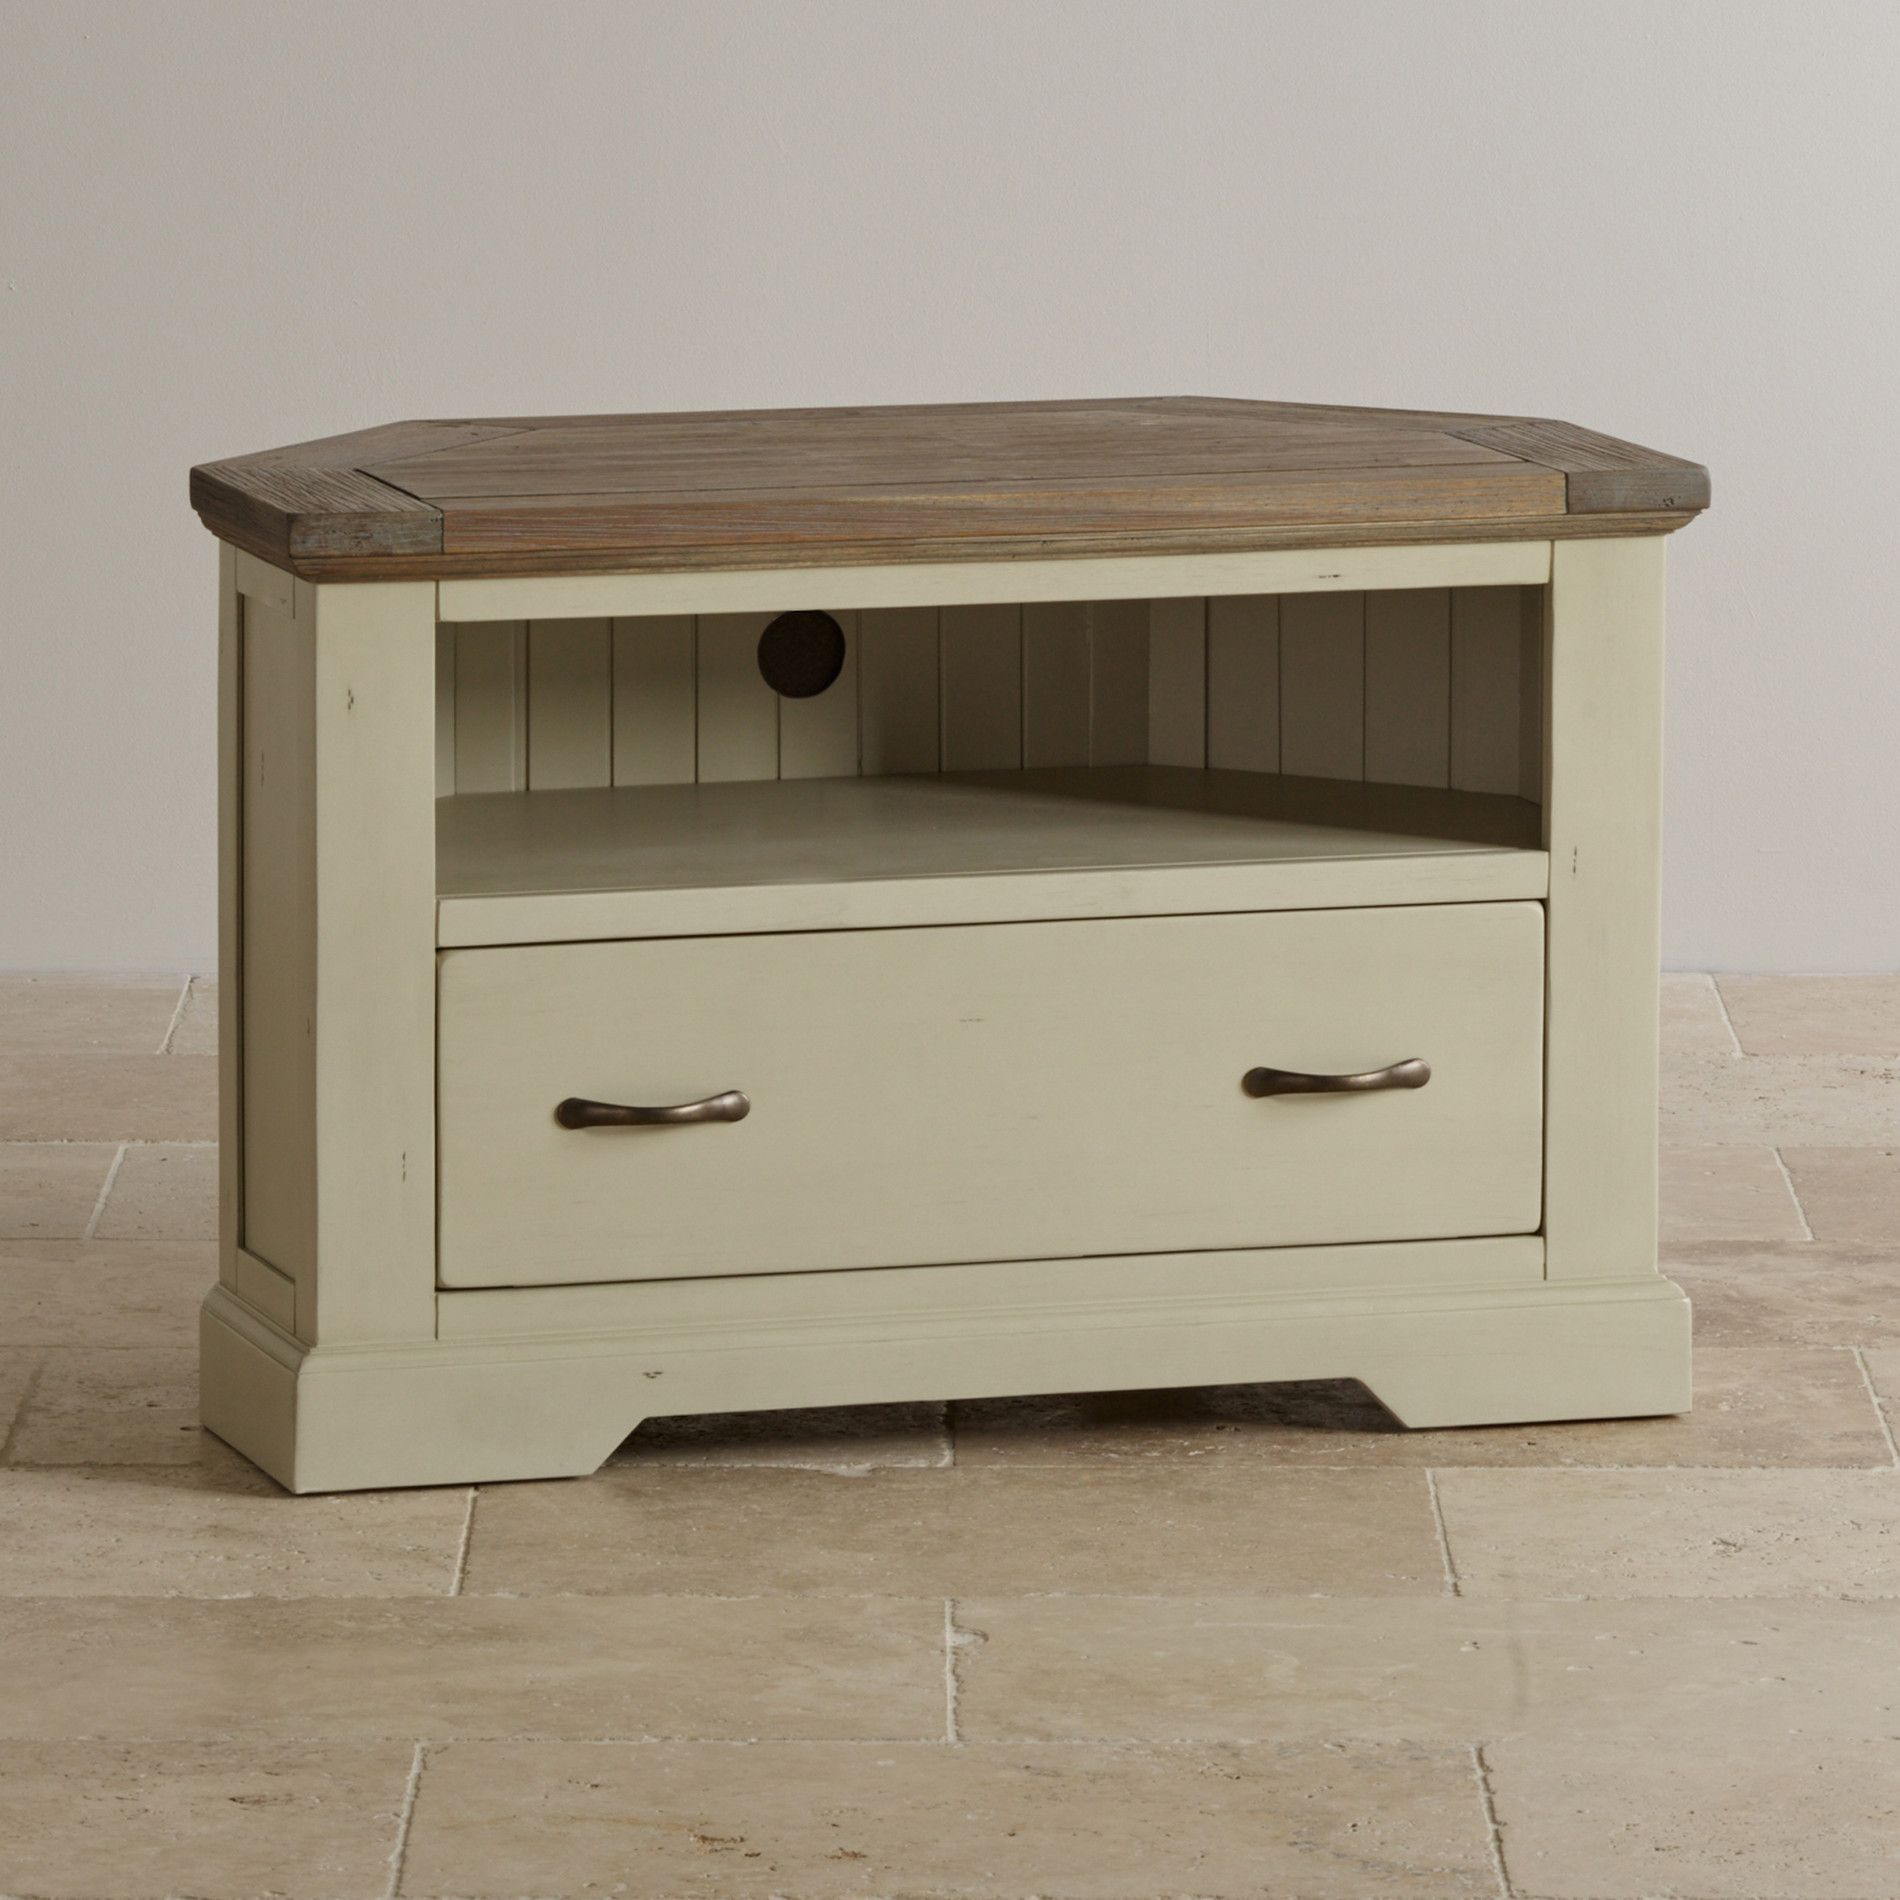 Viva plast wooden colours - Isabella Brushed Acacia And Painted Corner Tv Cabinet